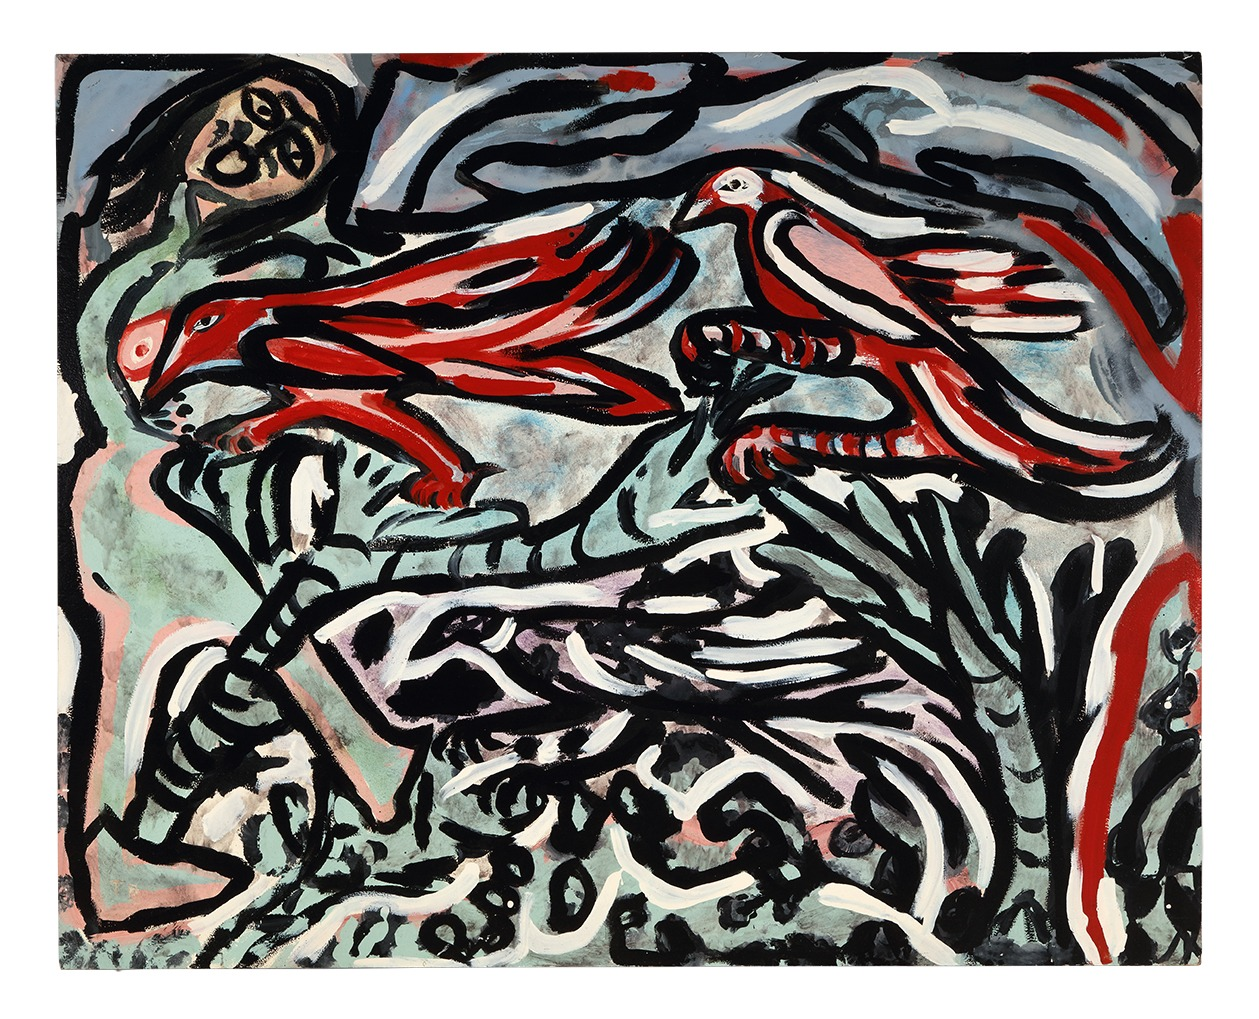 An untitled painting by Thornton Dial, dated 1989.